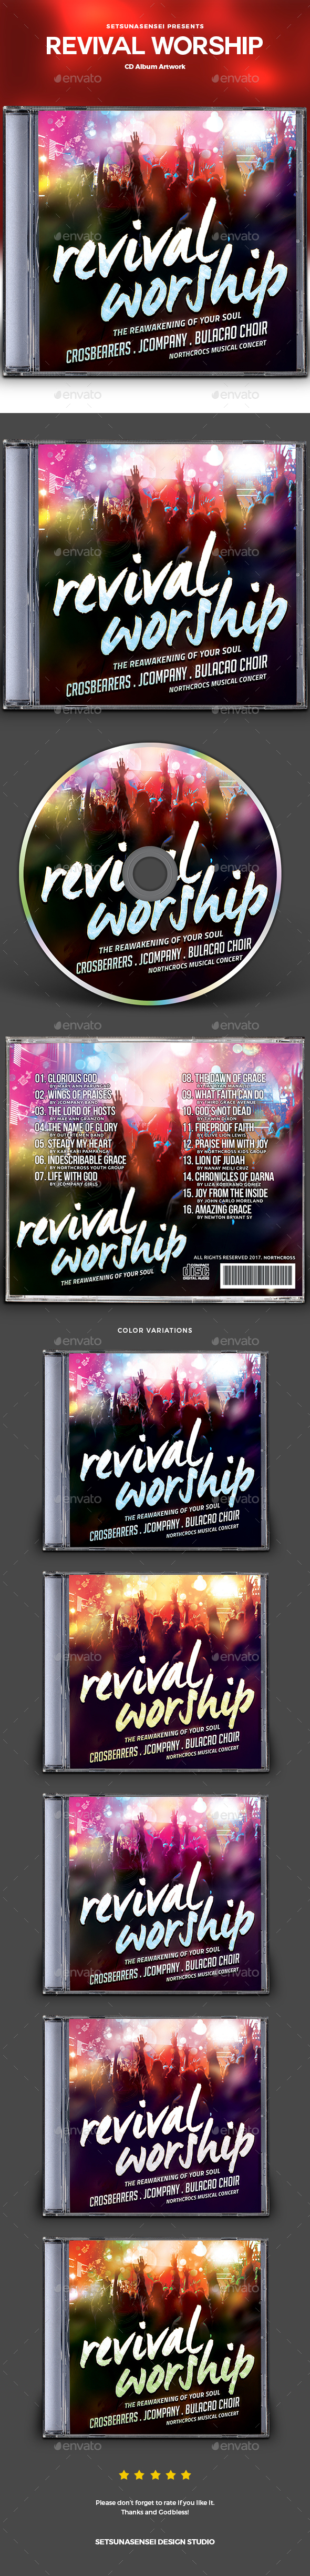 GraphicRiver Revival Worship CD Album Artwork 20799187